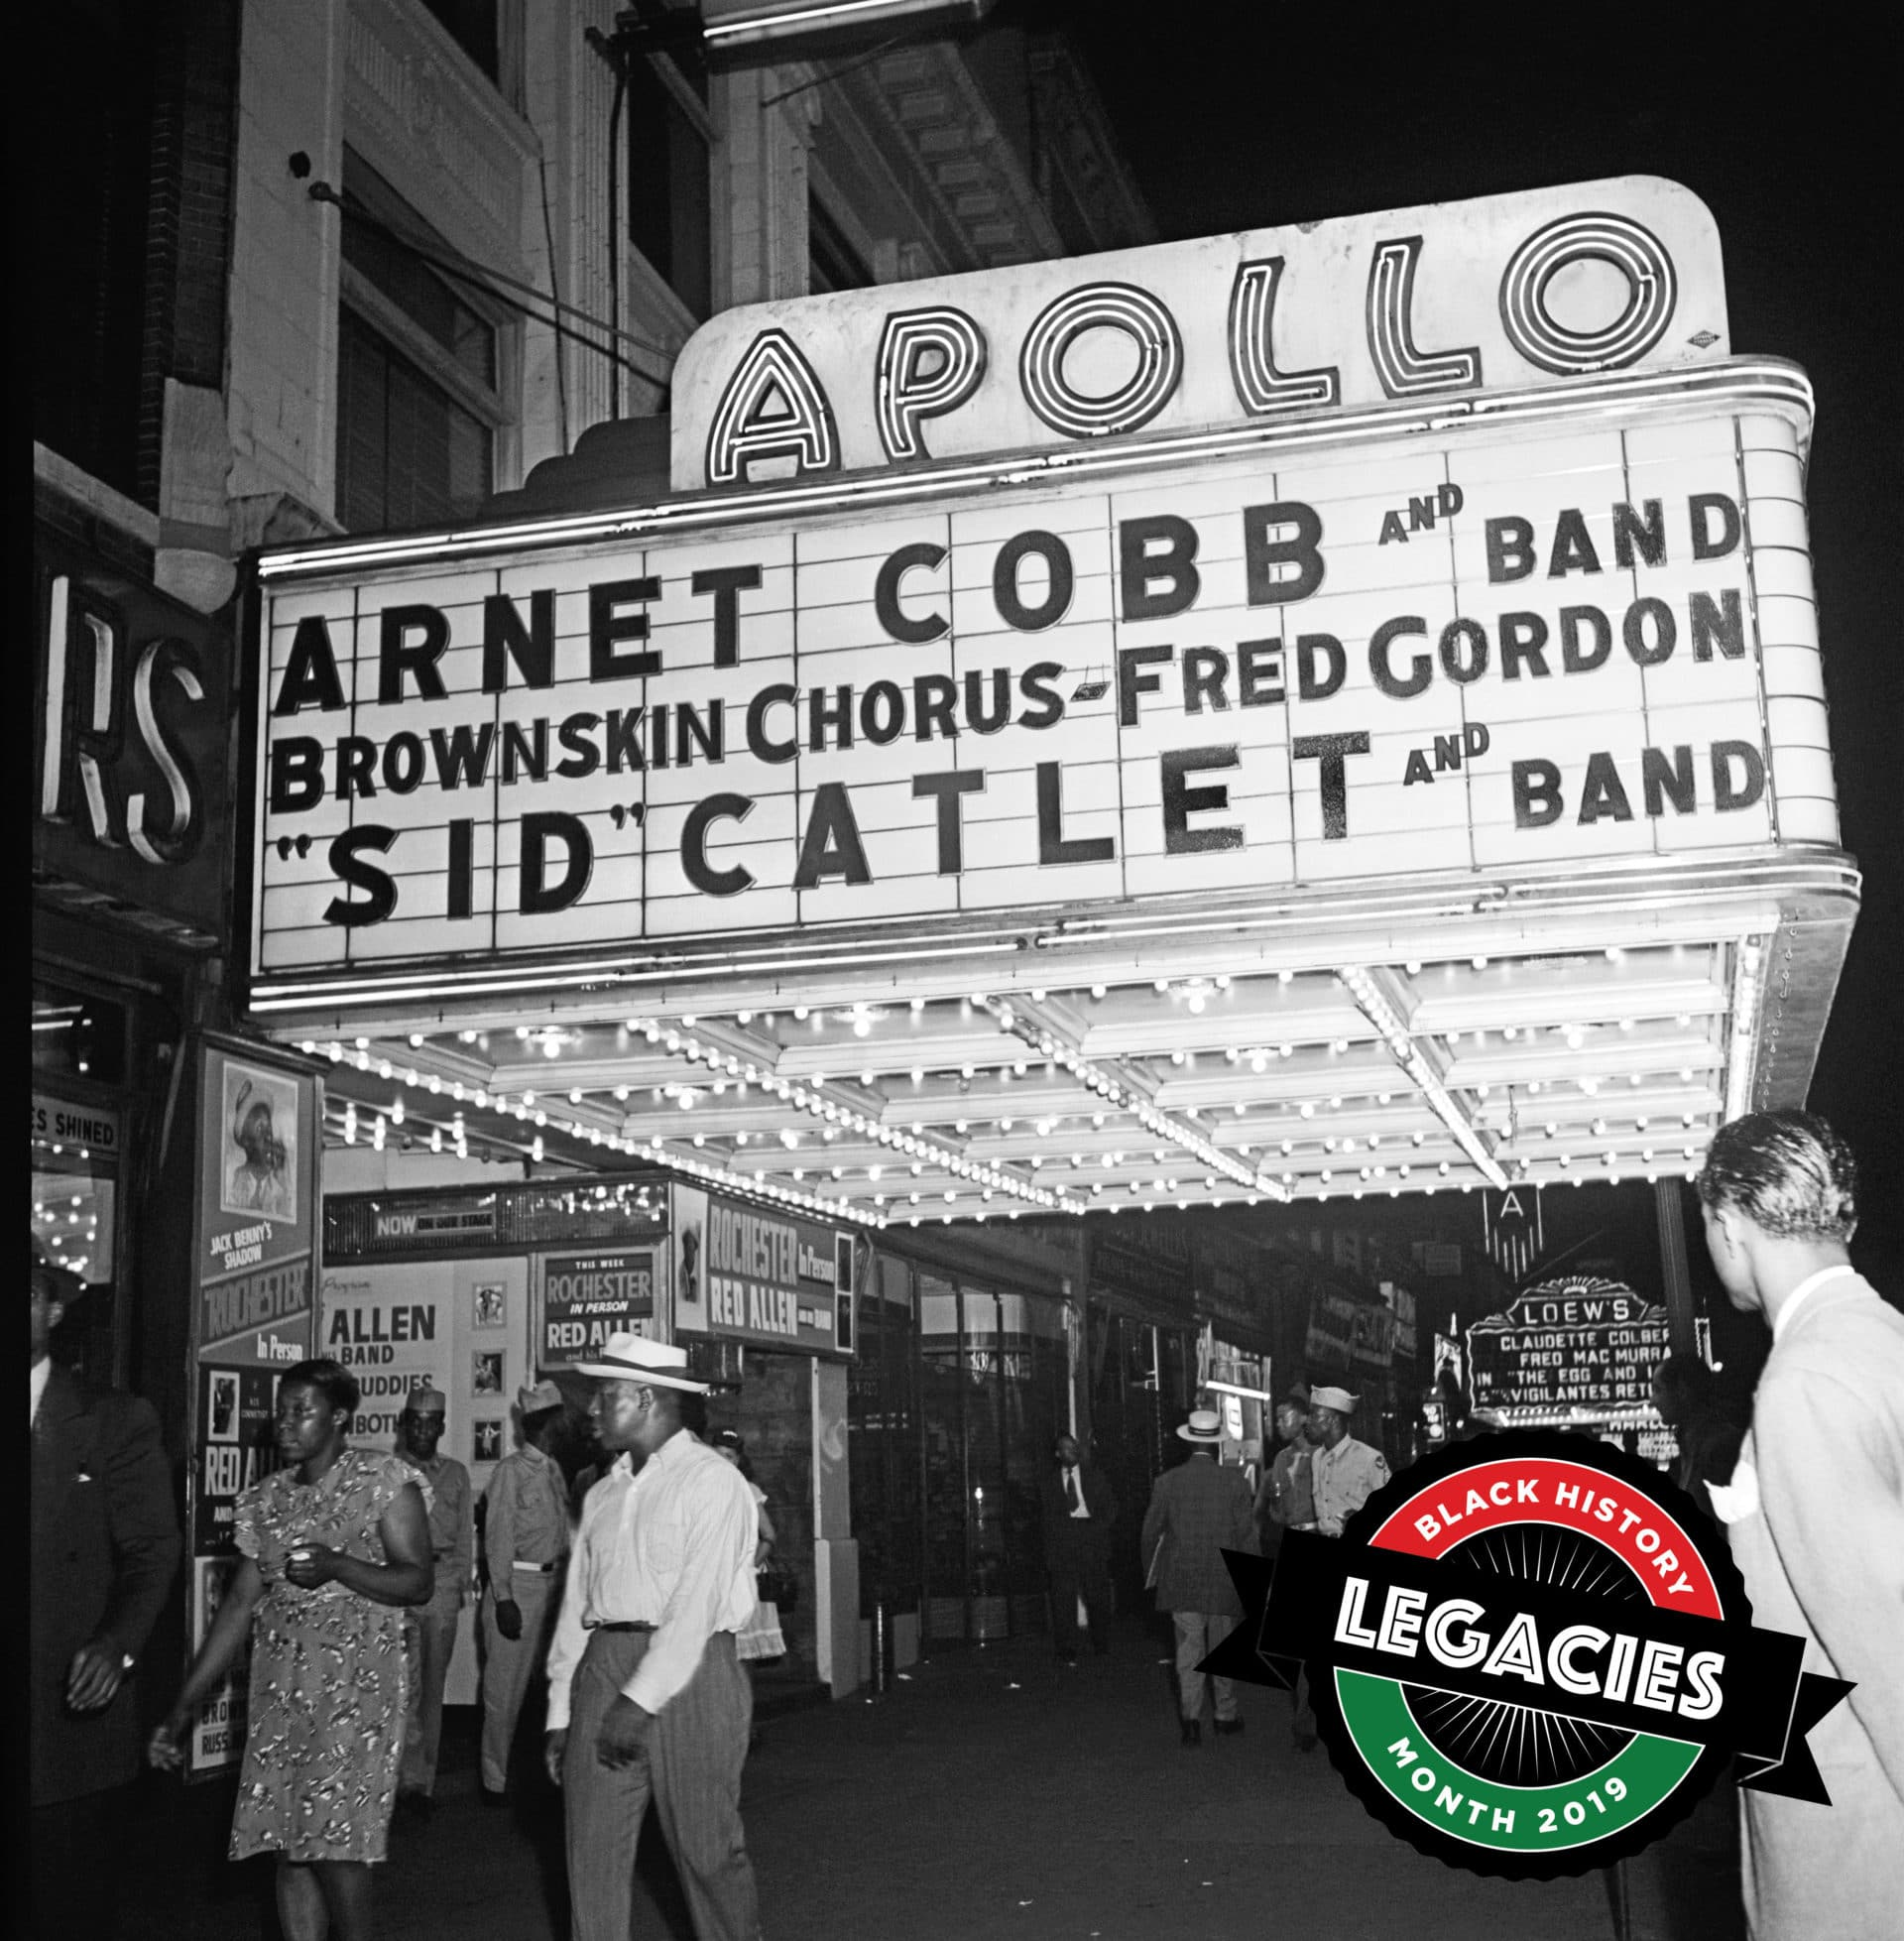 Cultural Icon Apollo Theater Sets New Goals As They Celebrate Their 85th Anniversary